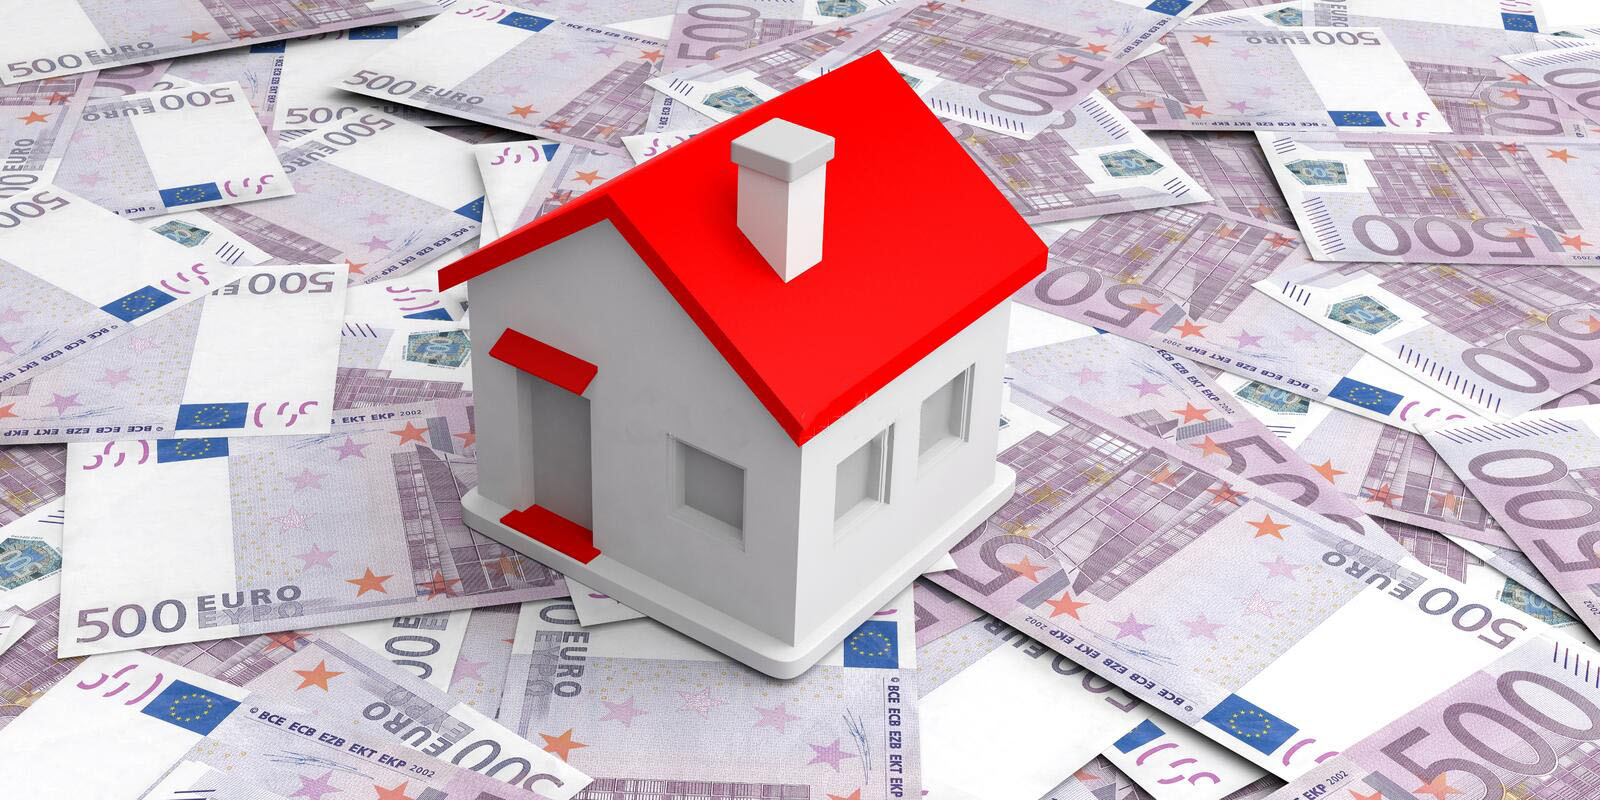 d-rendering-small-house-euros-banknotes-background-77361783